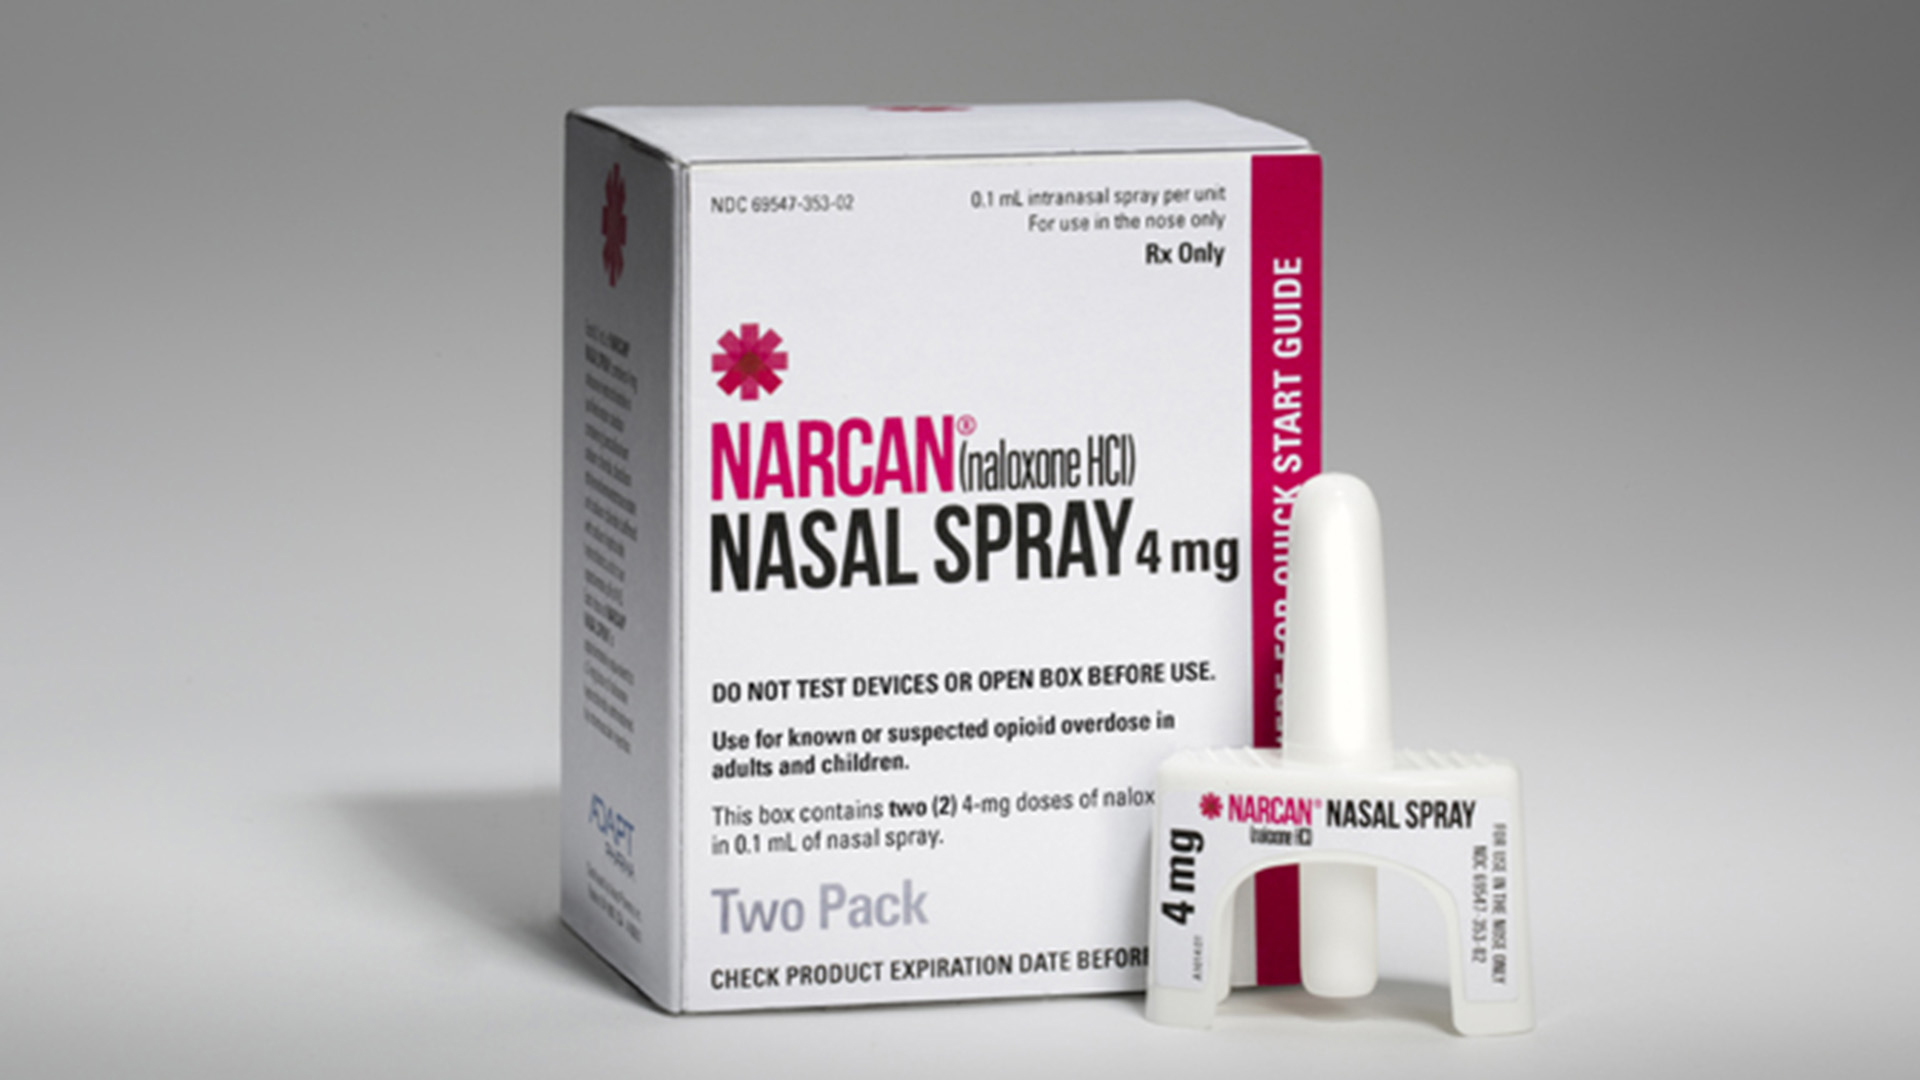 As part of the Alexandria Police Department's commitment to address the opioid crisis in our community, sworn staff have completed training on the use of Naloxone (Narcan) and each patrol officer will carry it on duty in Alexandria, Virginia.